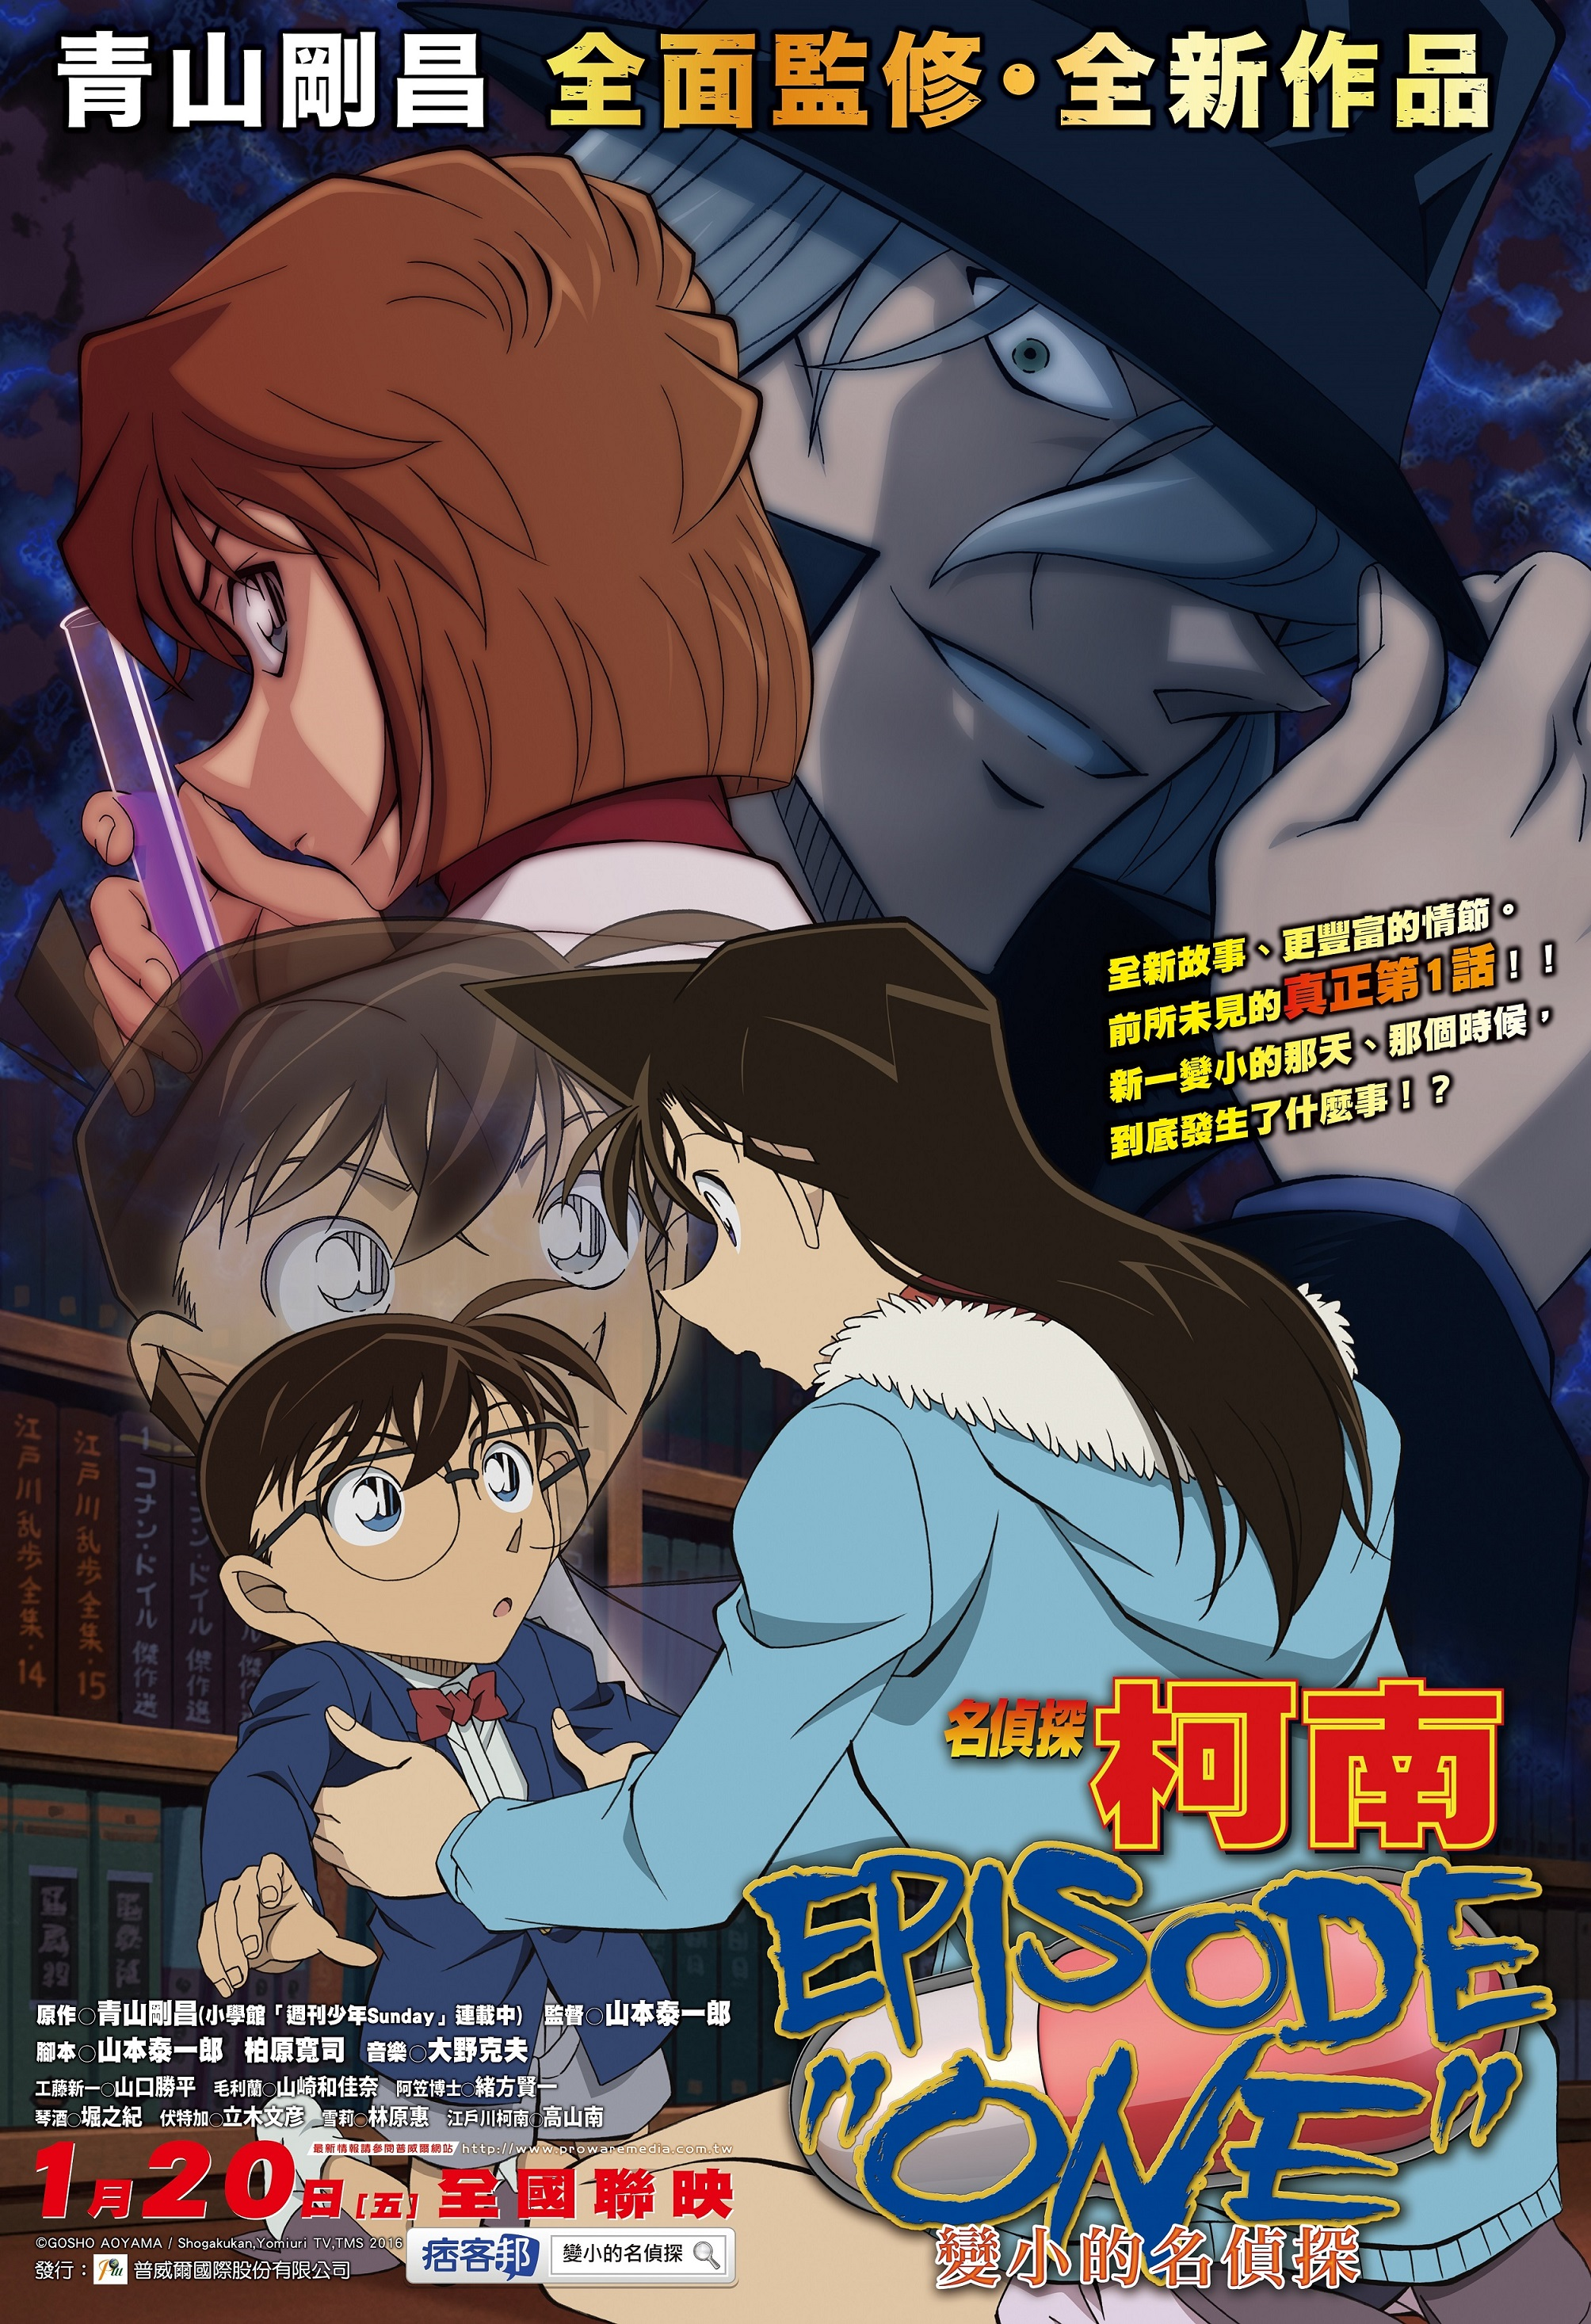 Detective Conan: Episode One - The Great Detective Turned